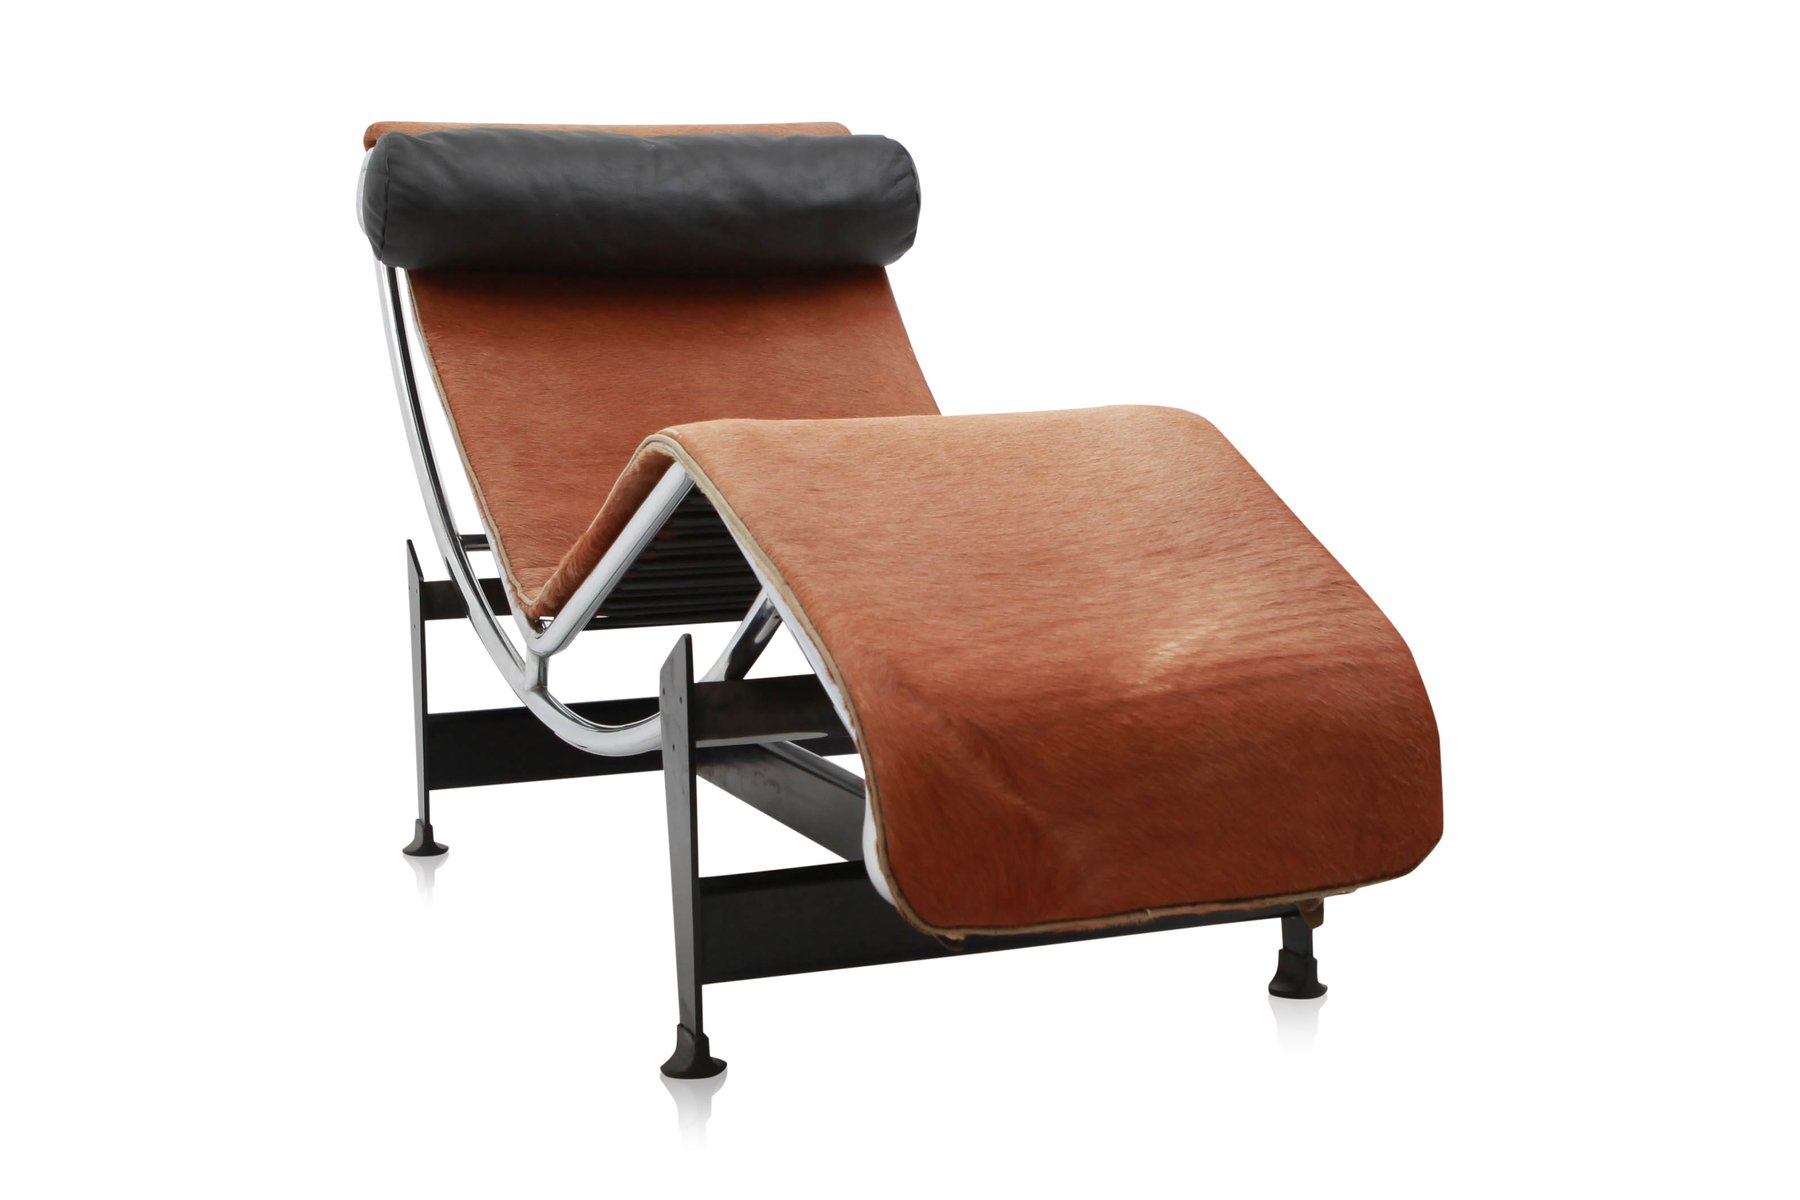 LC4 Pony Lounge Chair by Le Corbusier for Cassina 1960s for sale at Pamono